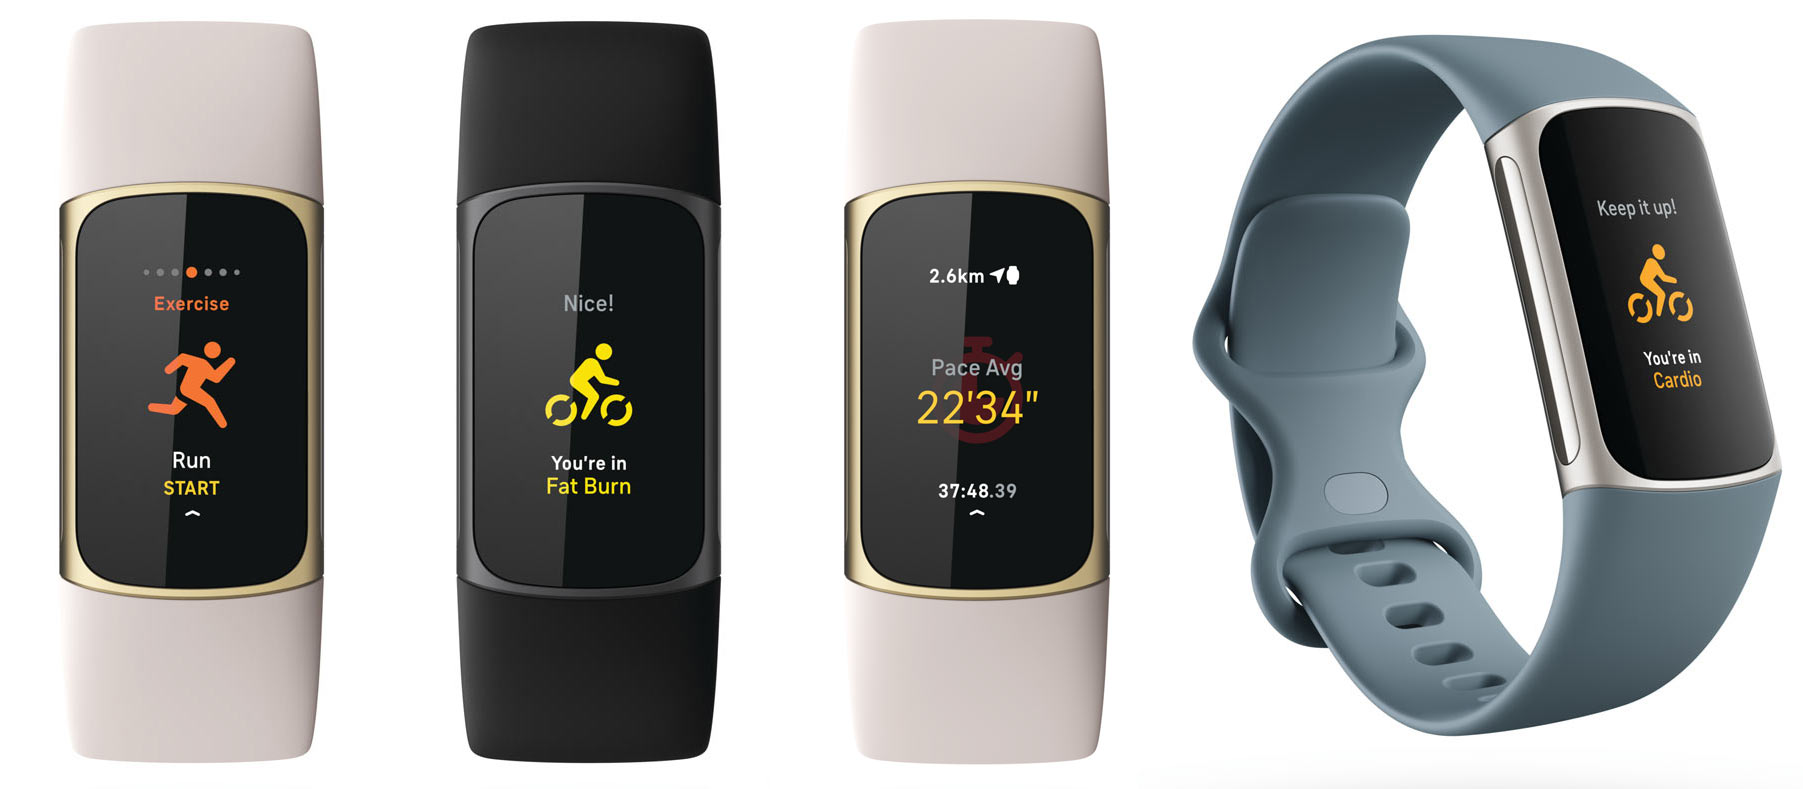 workout tracking screens on fitbit charge 5 fitness tracker